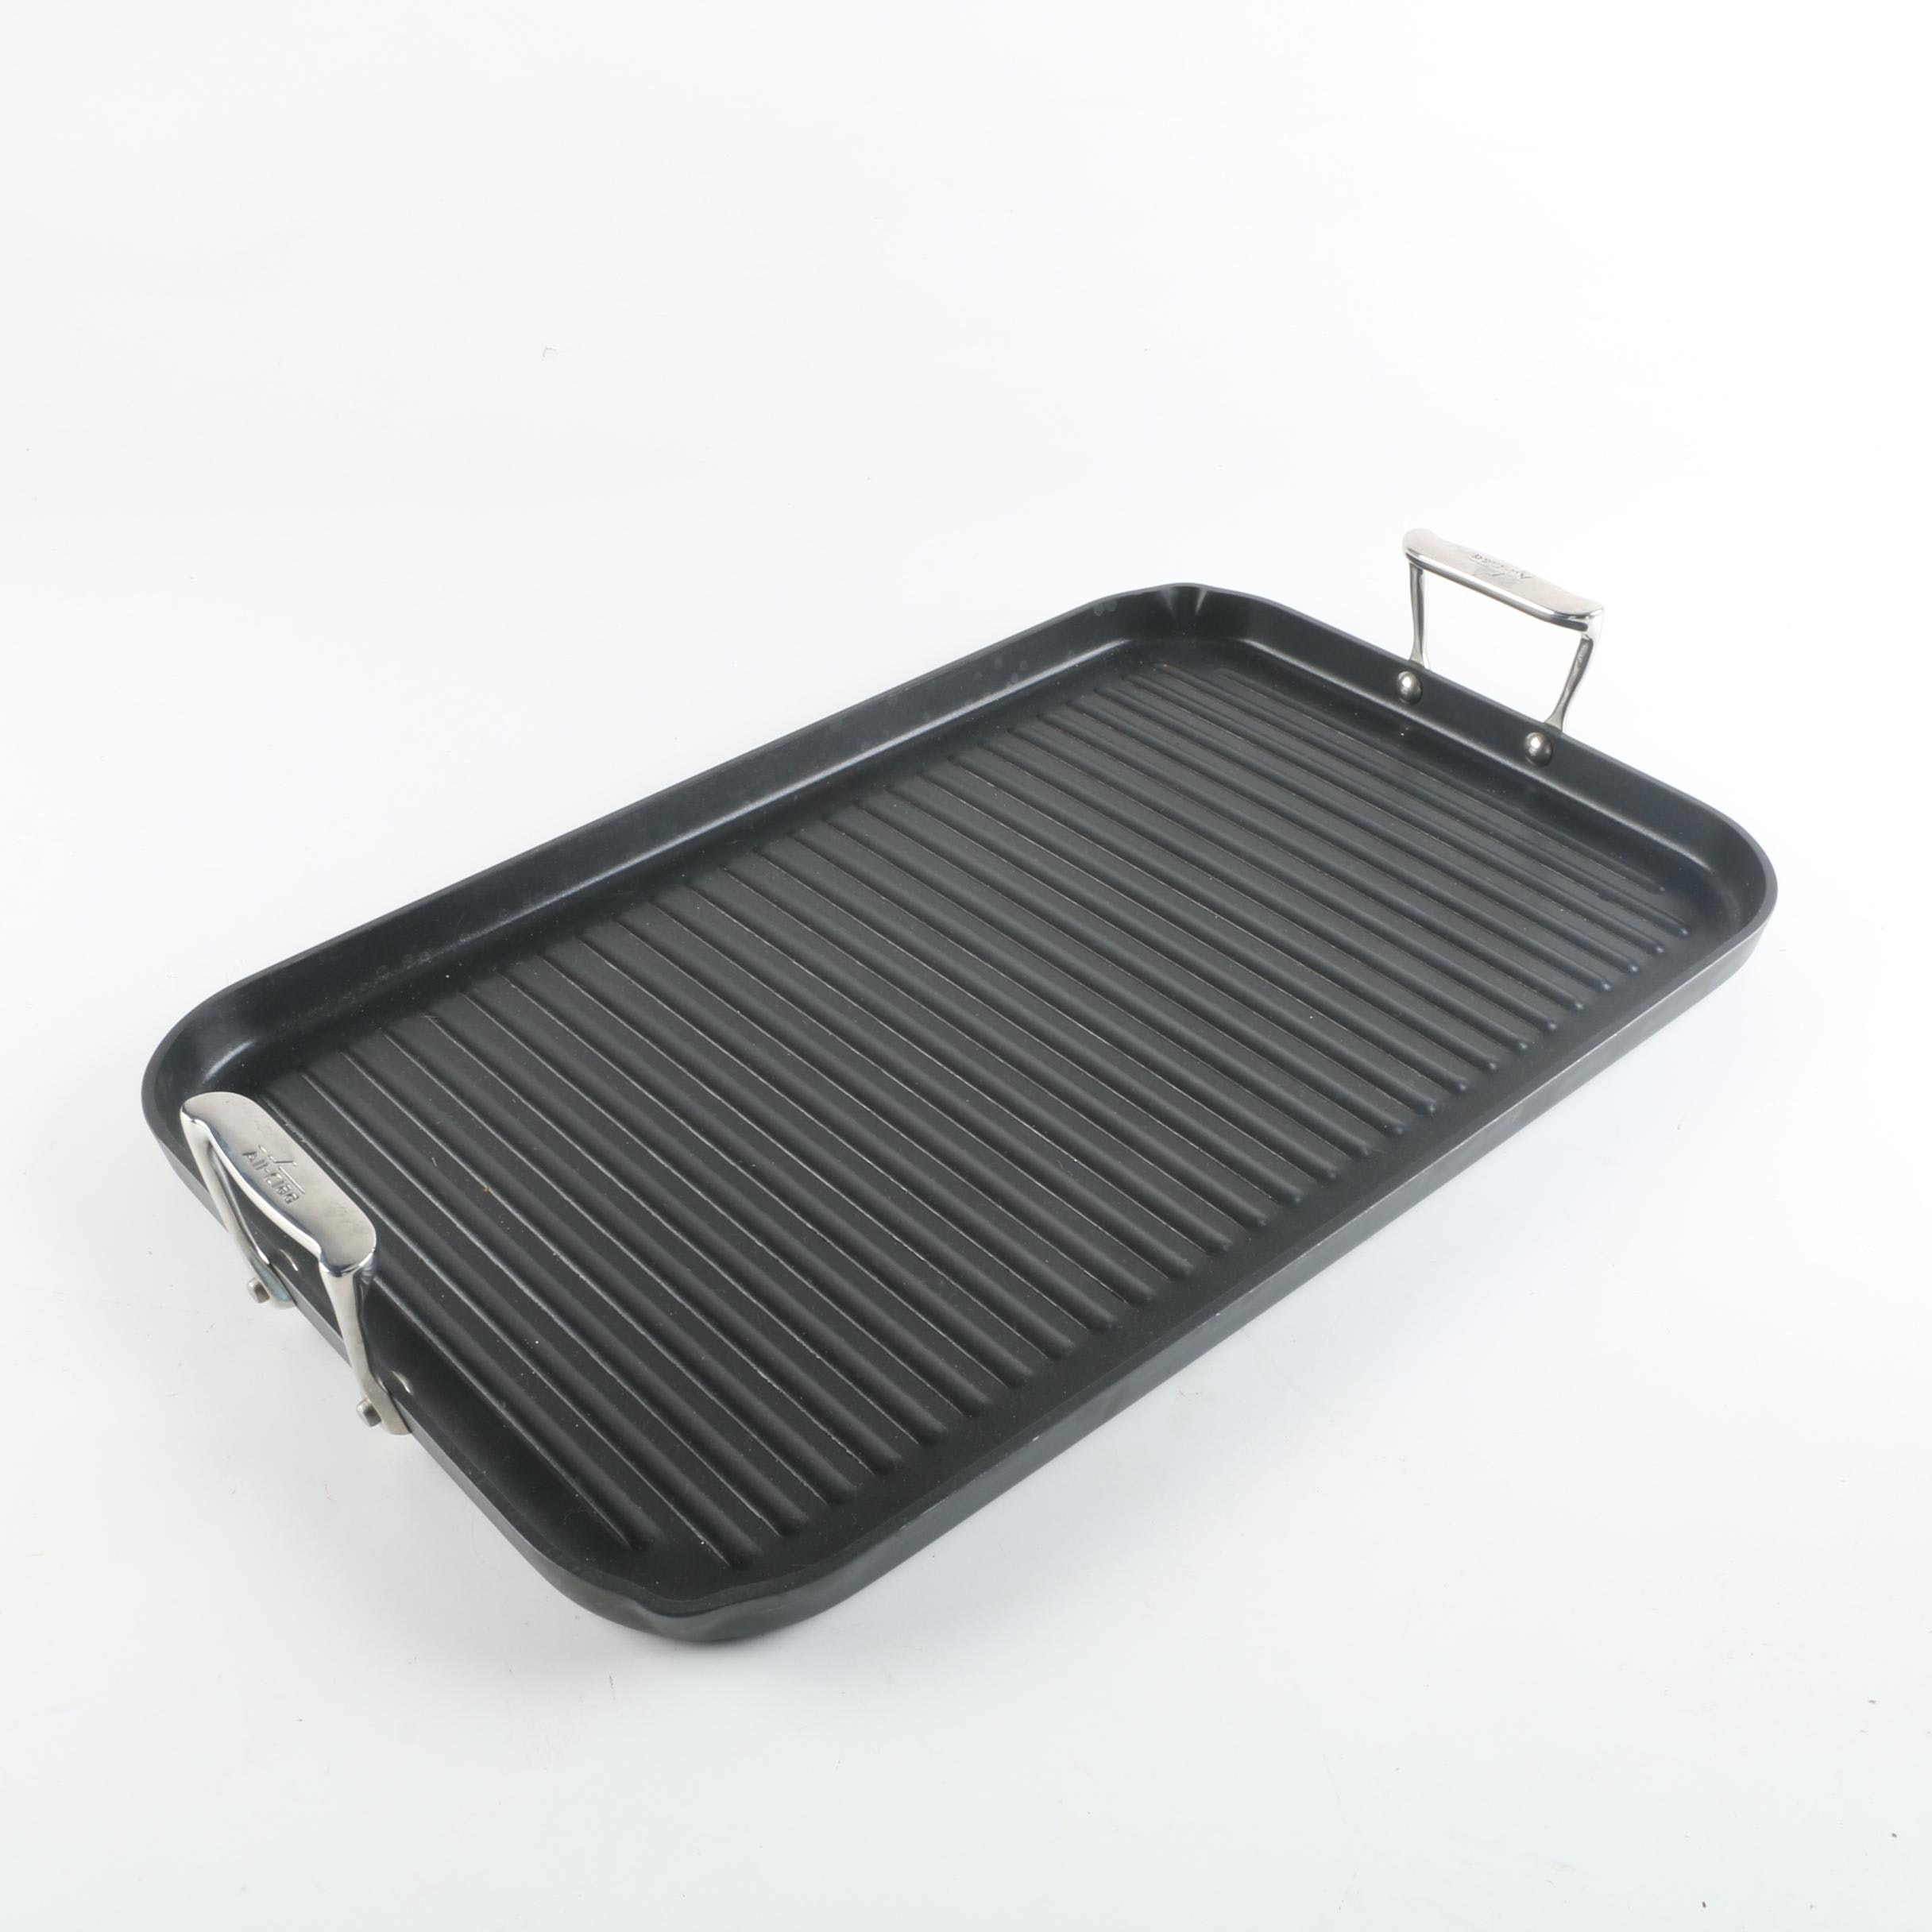 All-Clad Cast Iron Grill Pan